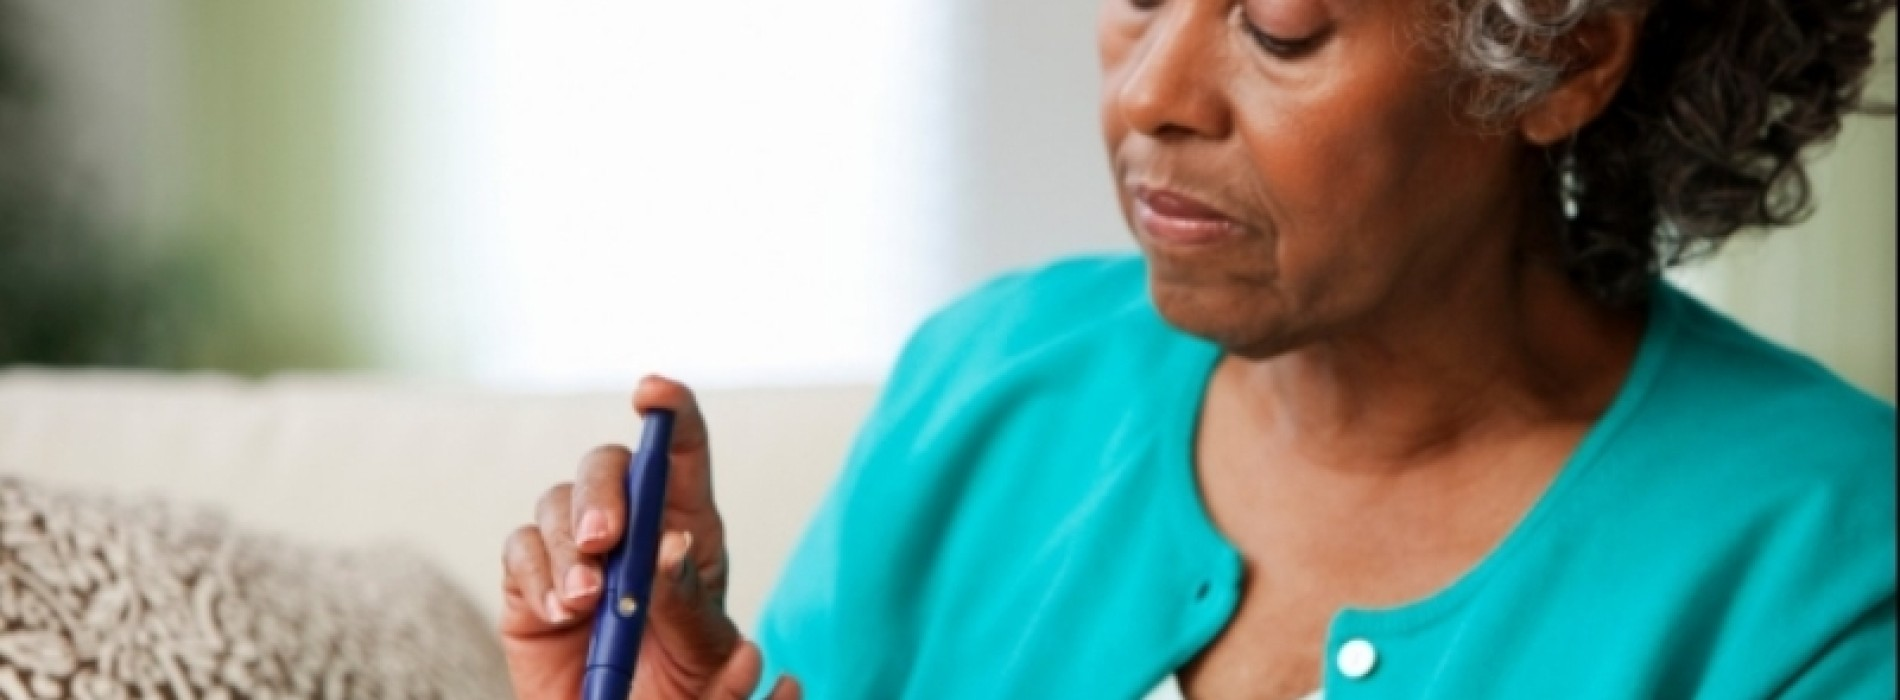 Women with Type 2 diabetes more at risk of coronary heart disease – Study